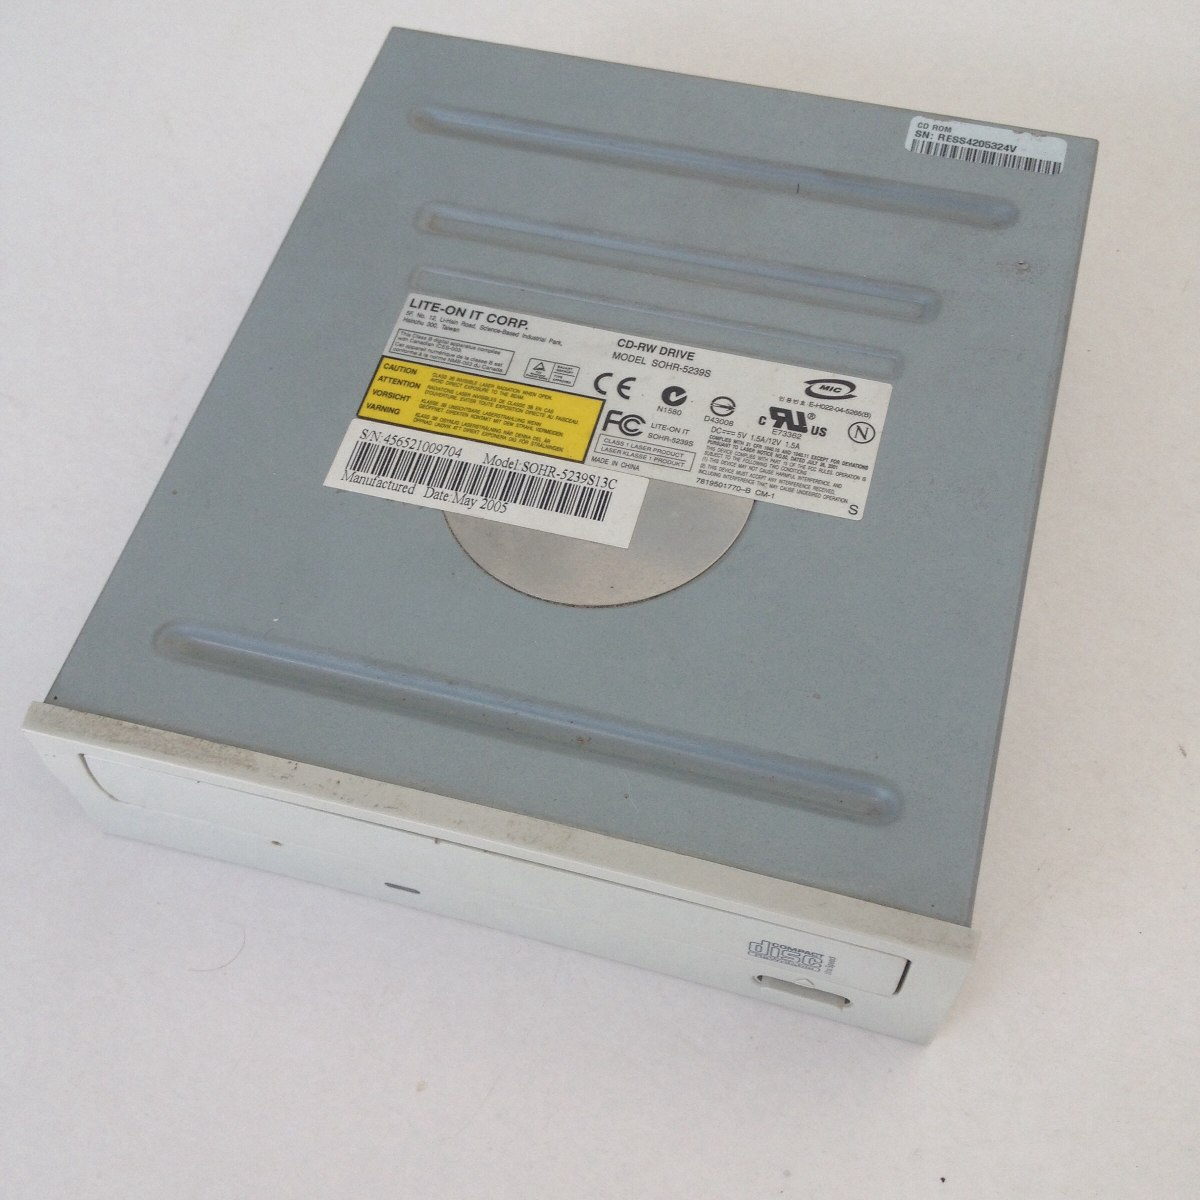 LITE ON CD RW SOHR 52395 DRIVER FOR PC